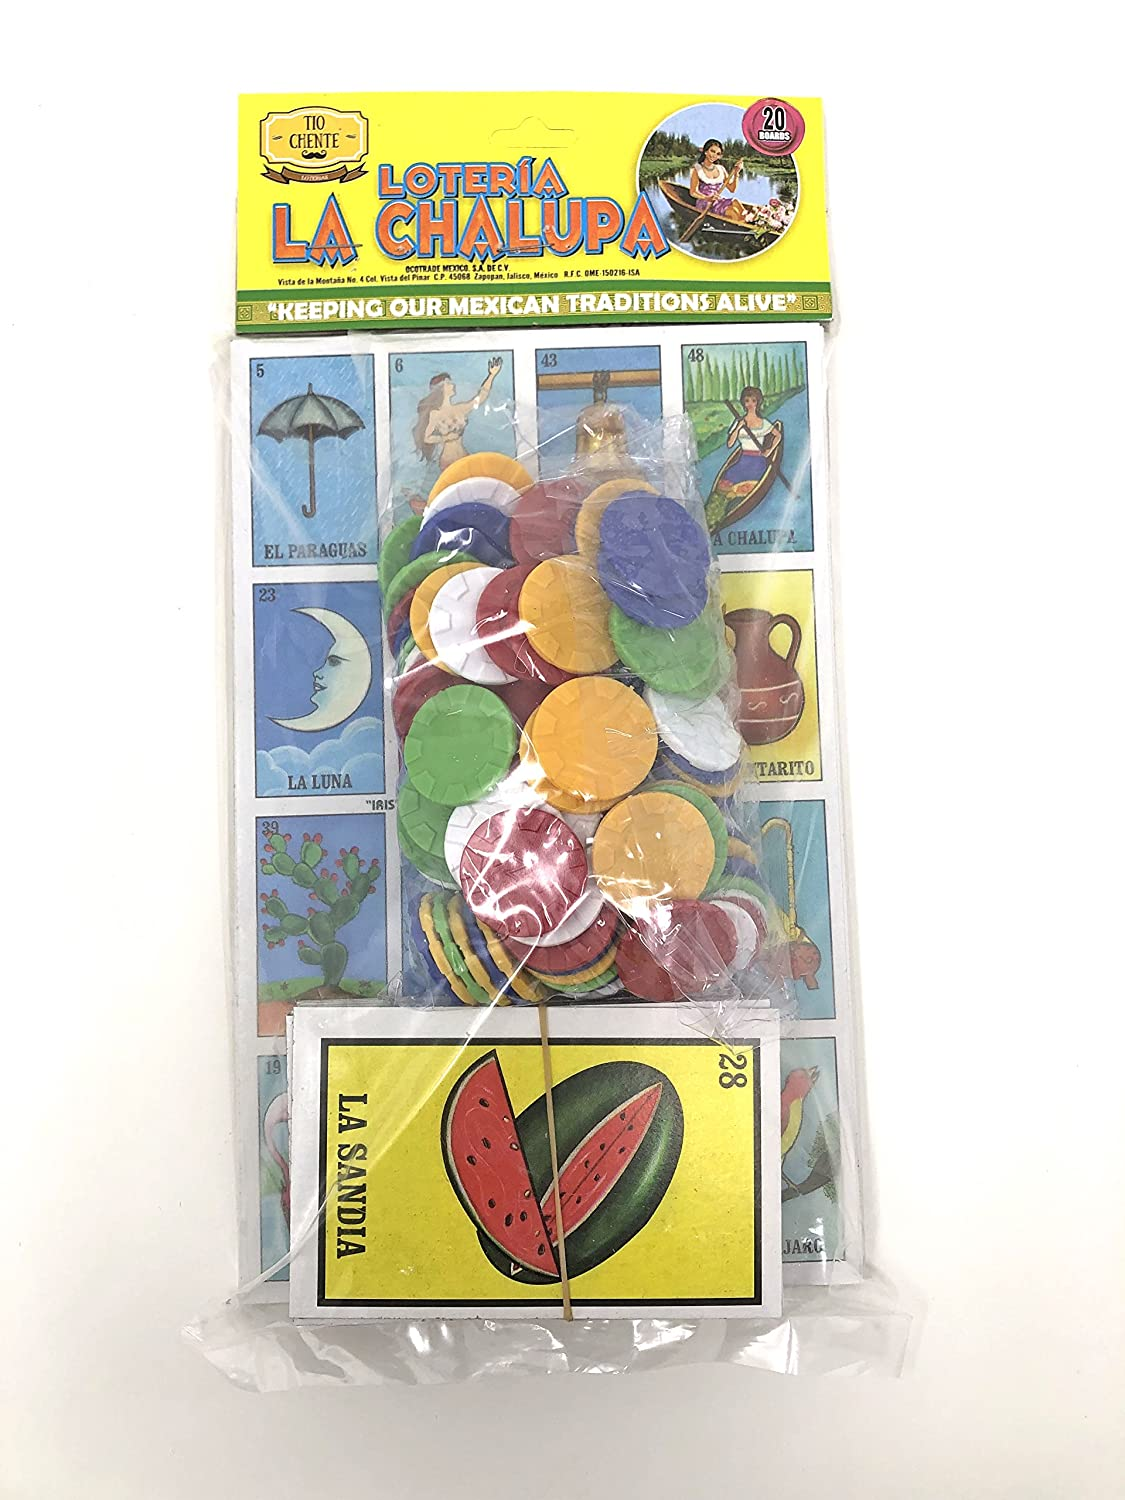 Amazon.com: Tio Chentes Set of Loteria Mexican Bingo with Colorful Poker Bingo Chips and Mexican Fake Play Money Bills: Toys & Games